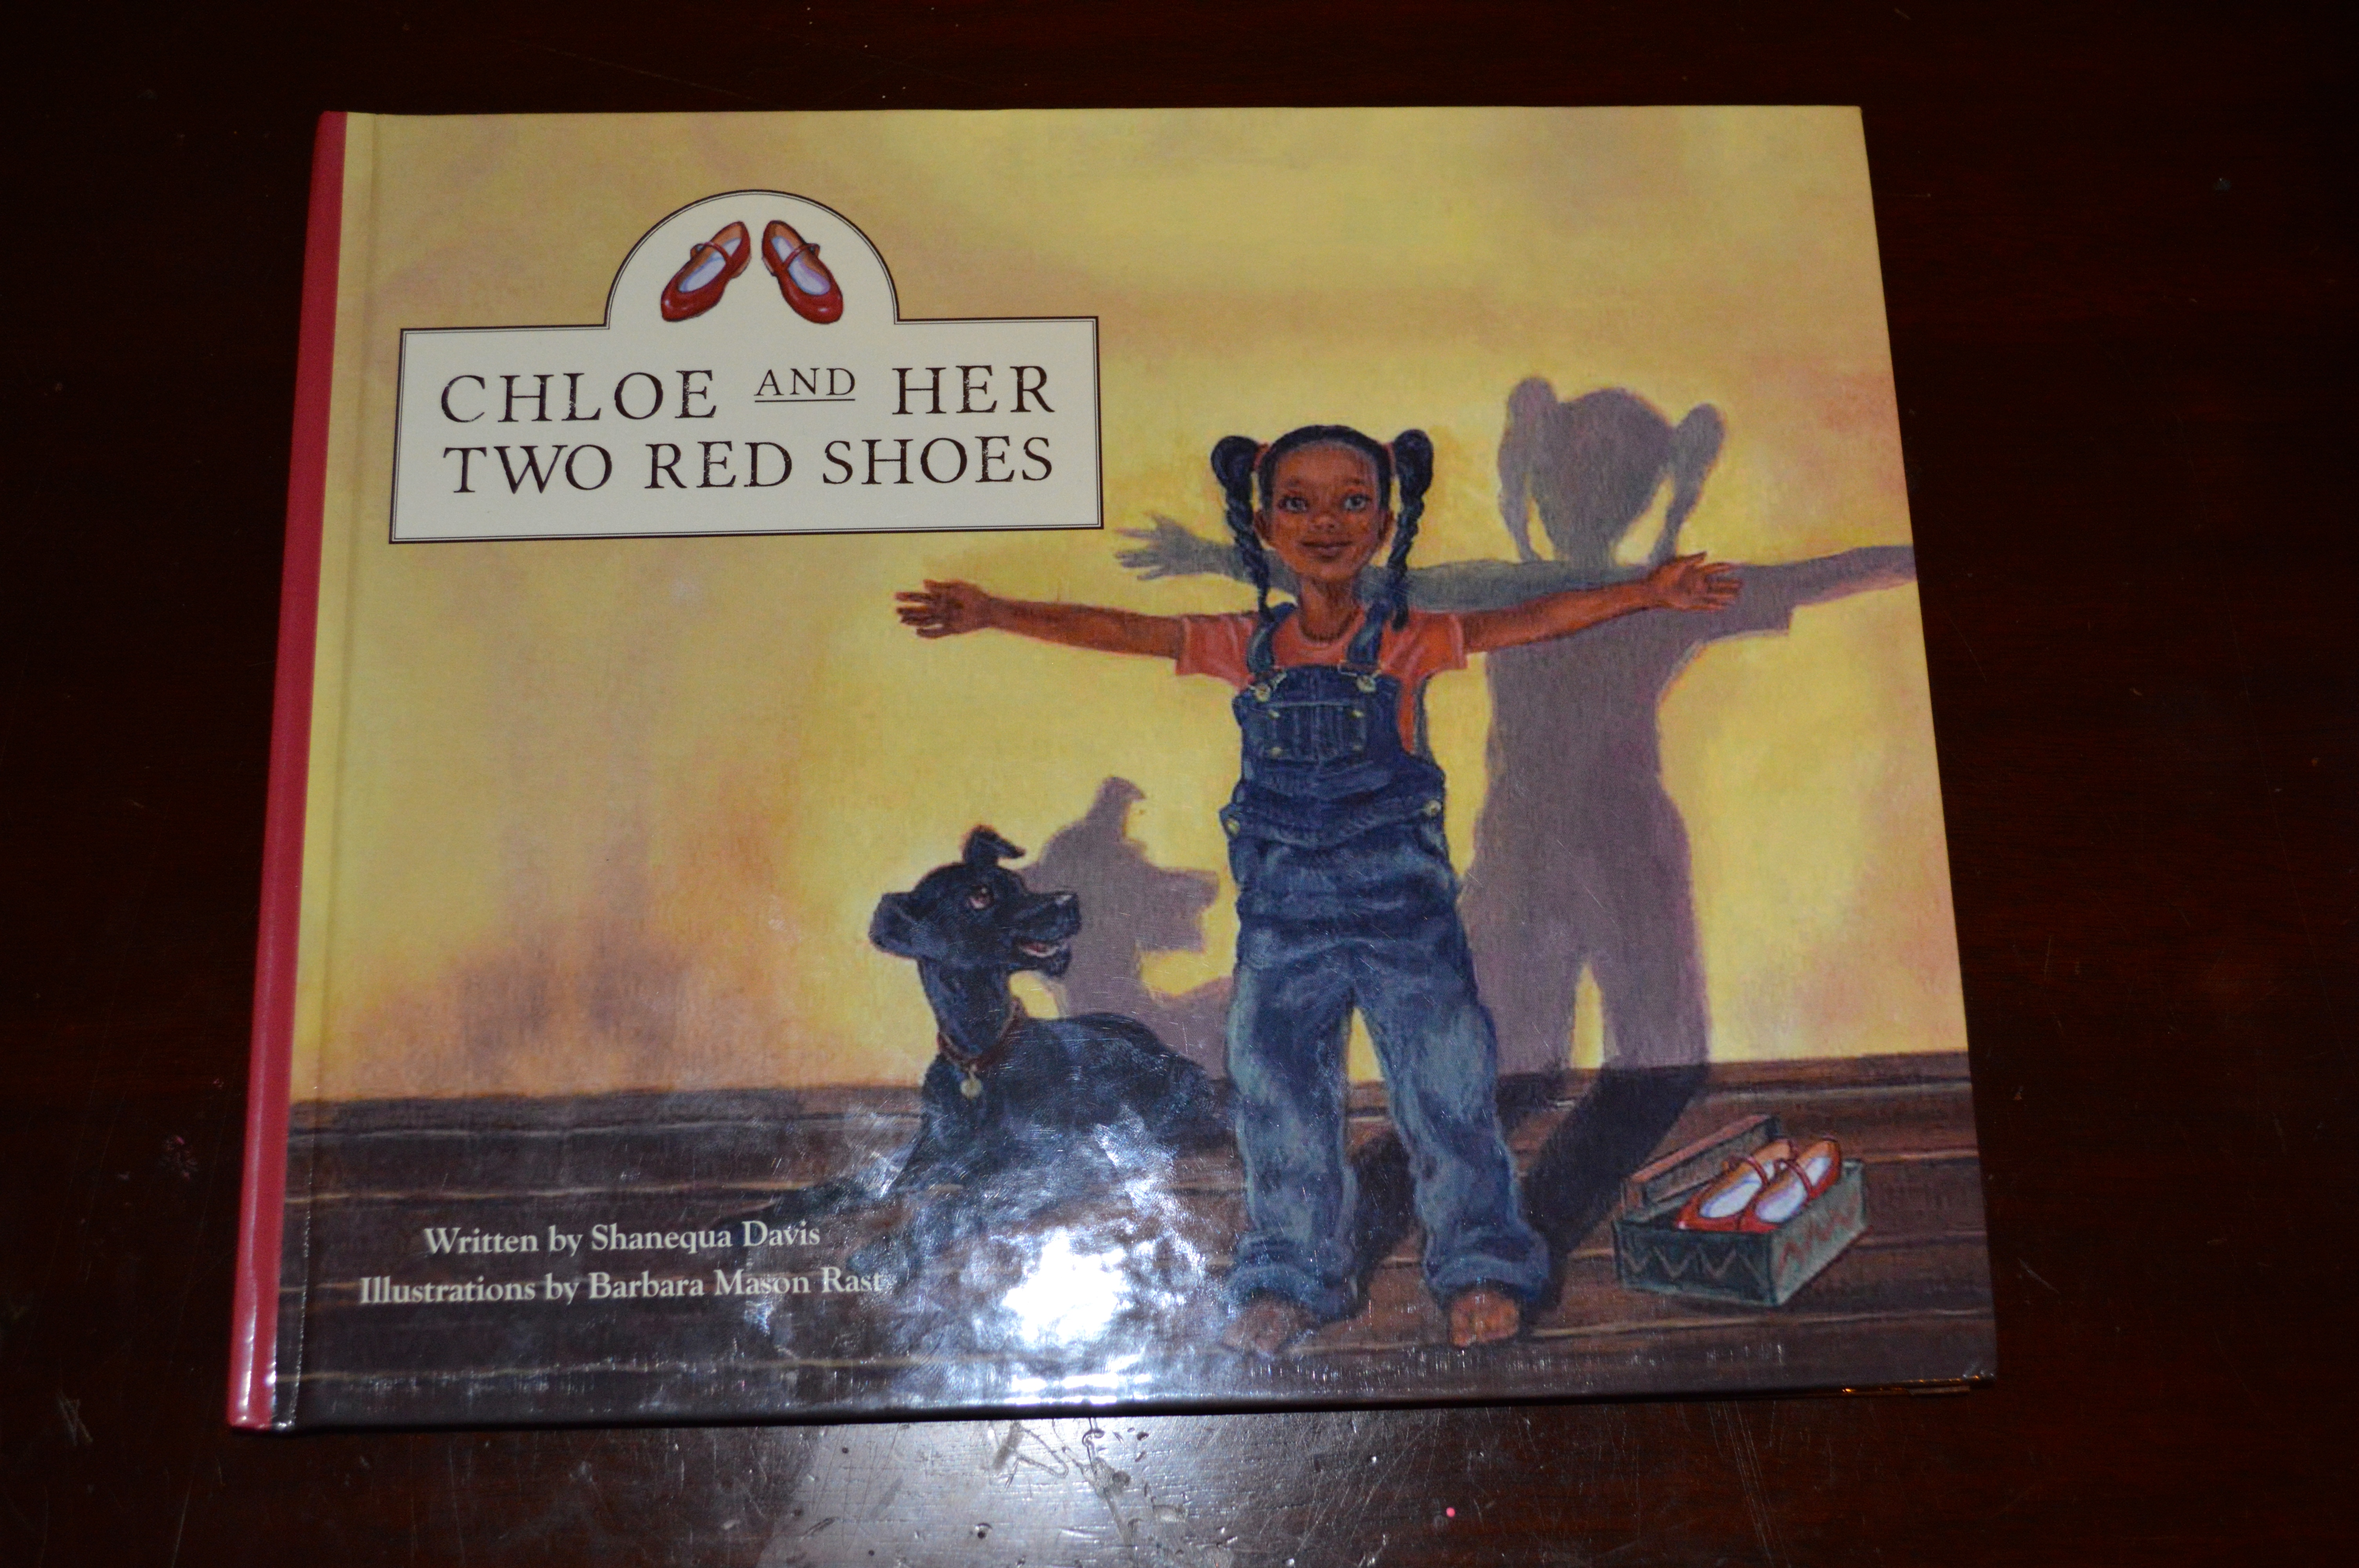 CHLOE and HER TWO RED SHOES - Siddy in The Sity